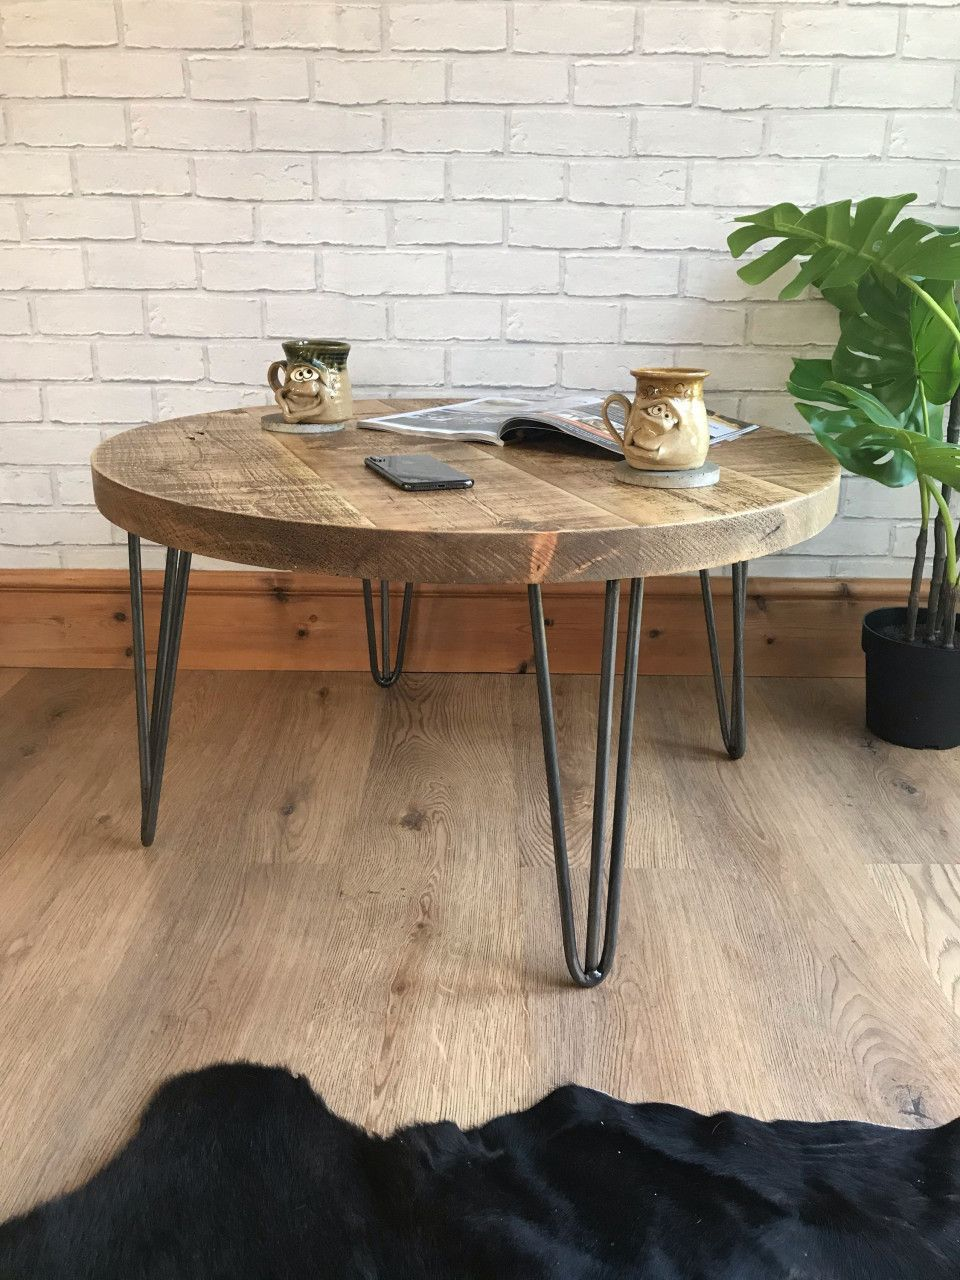 50 Inspirational Rustic Industrial Coffee Table 2020 Rustic Industrial Coffee Table Coffee Table Farmhouse Reclaimed Wood Coffee Table [ 1280 x 960 Pixel ]